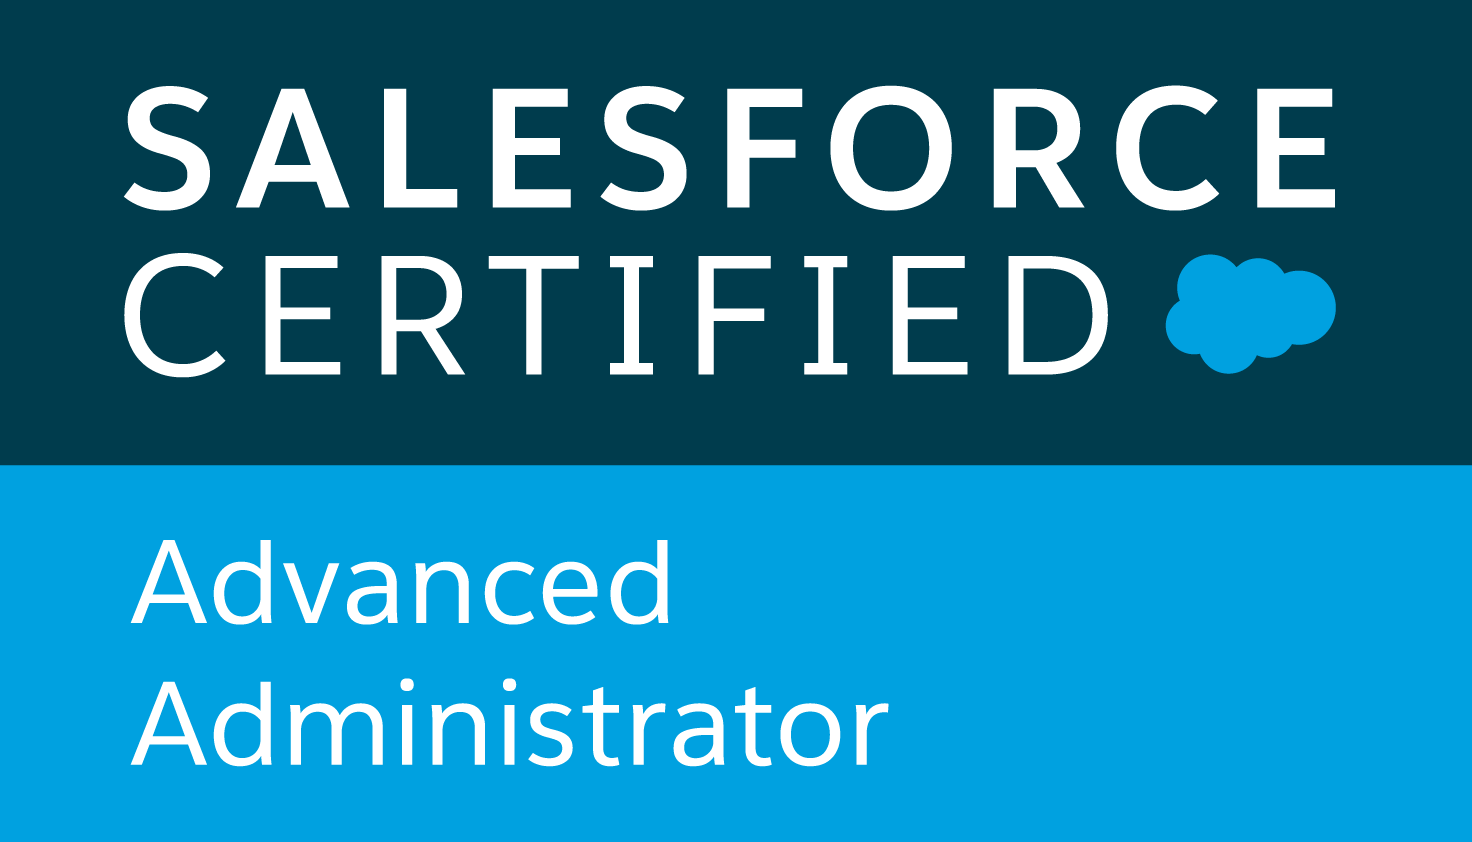 Salesforce Certified Advanced Administrator ADM 301